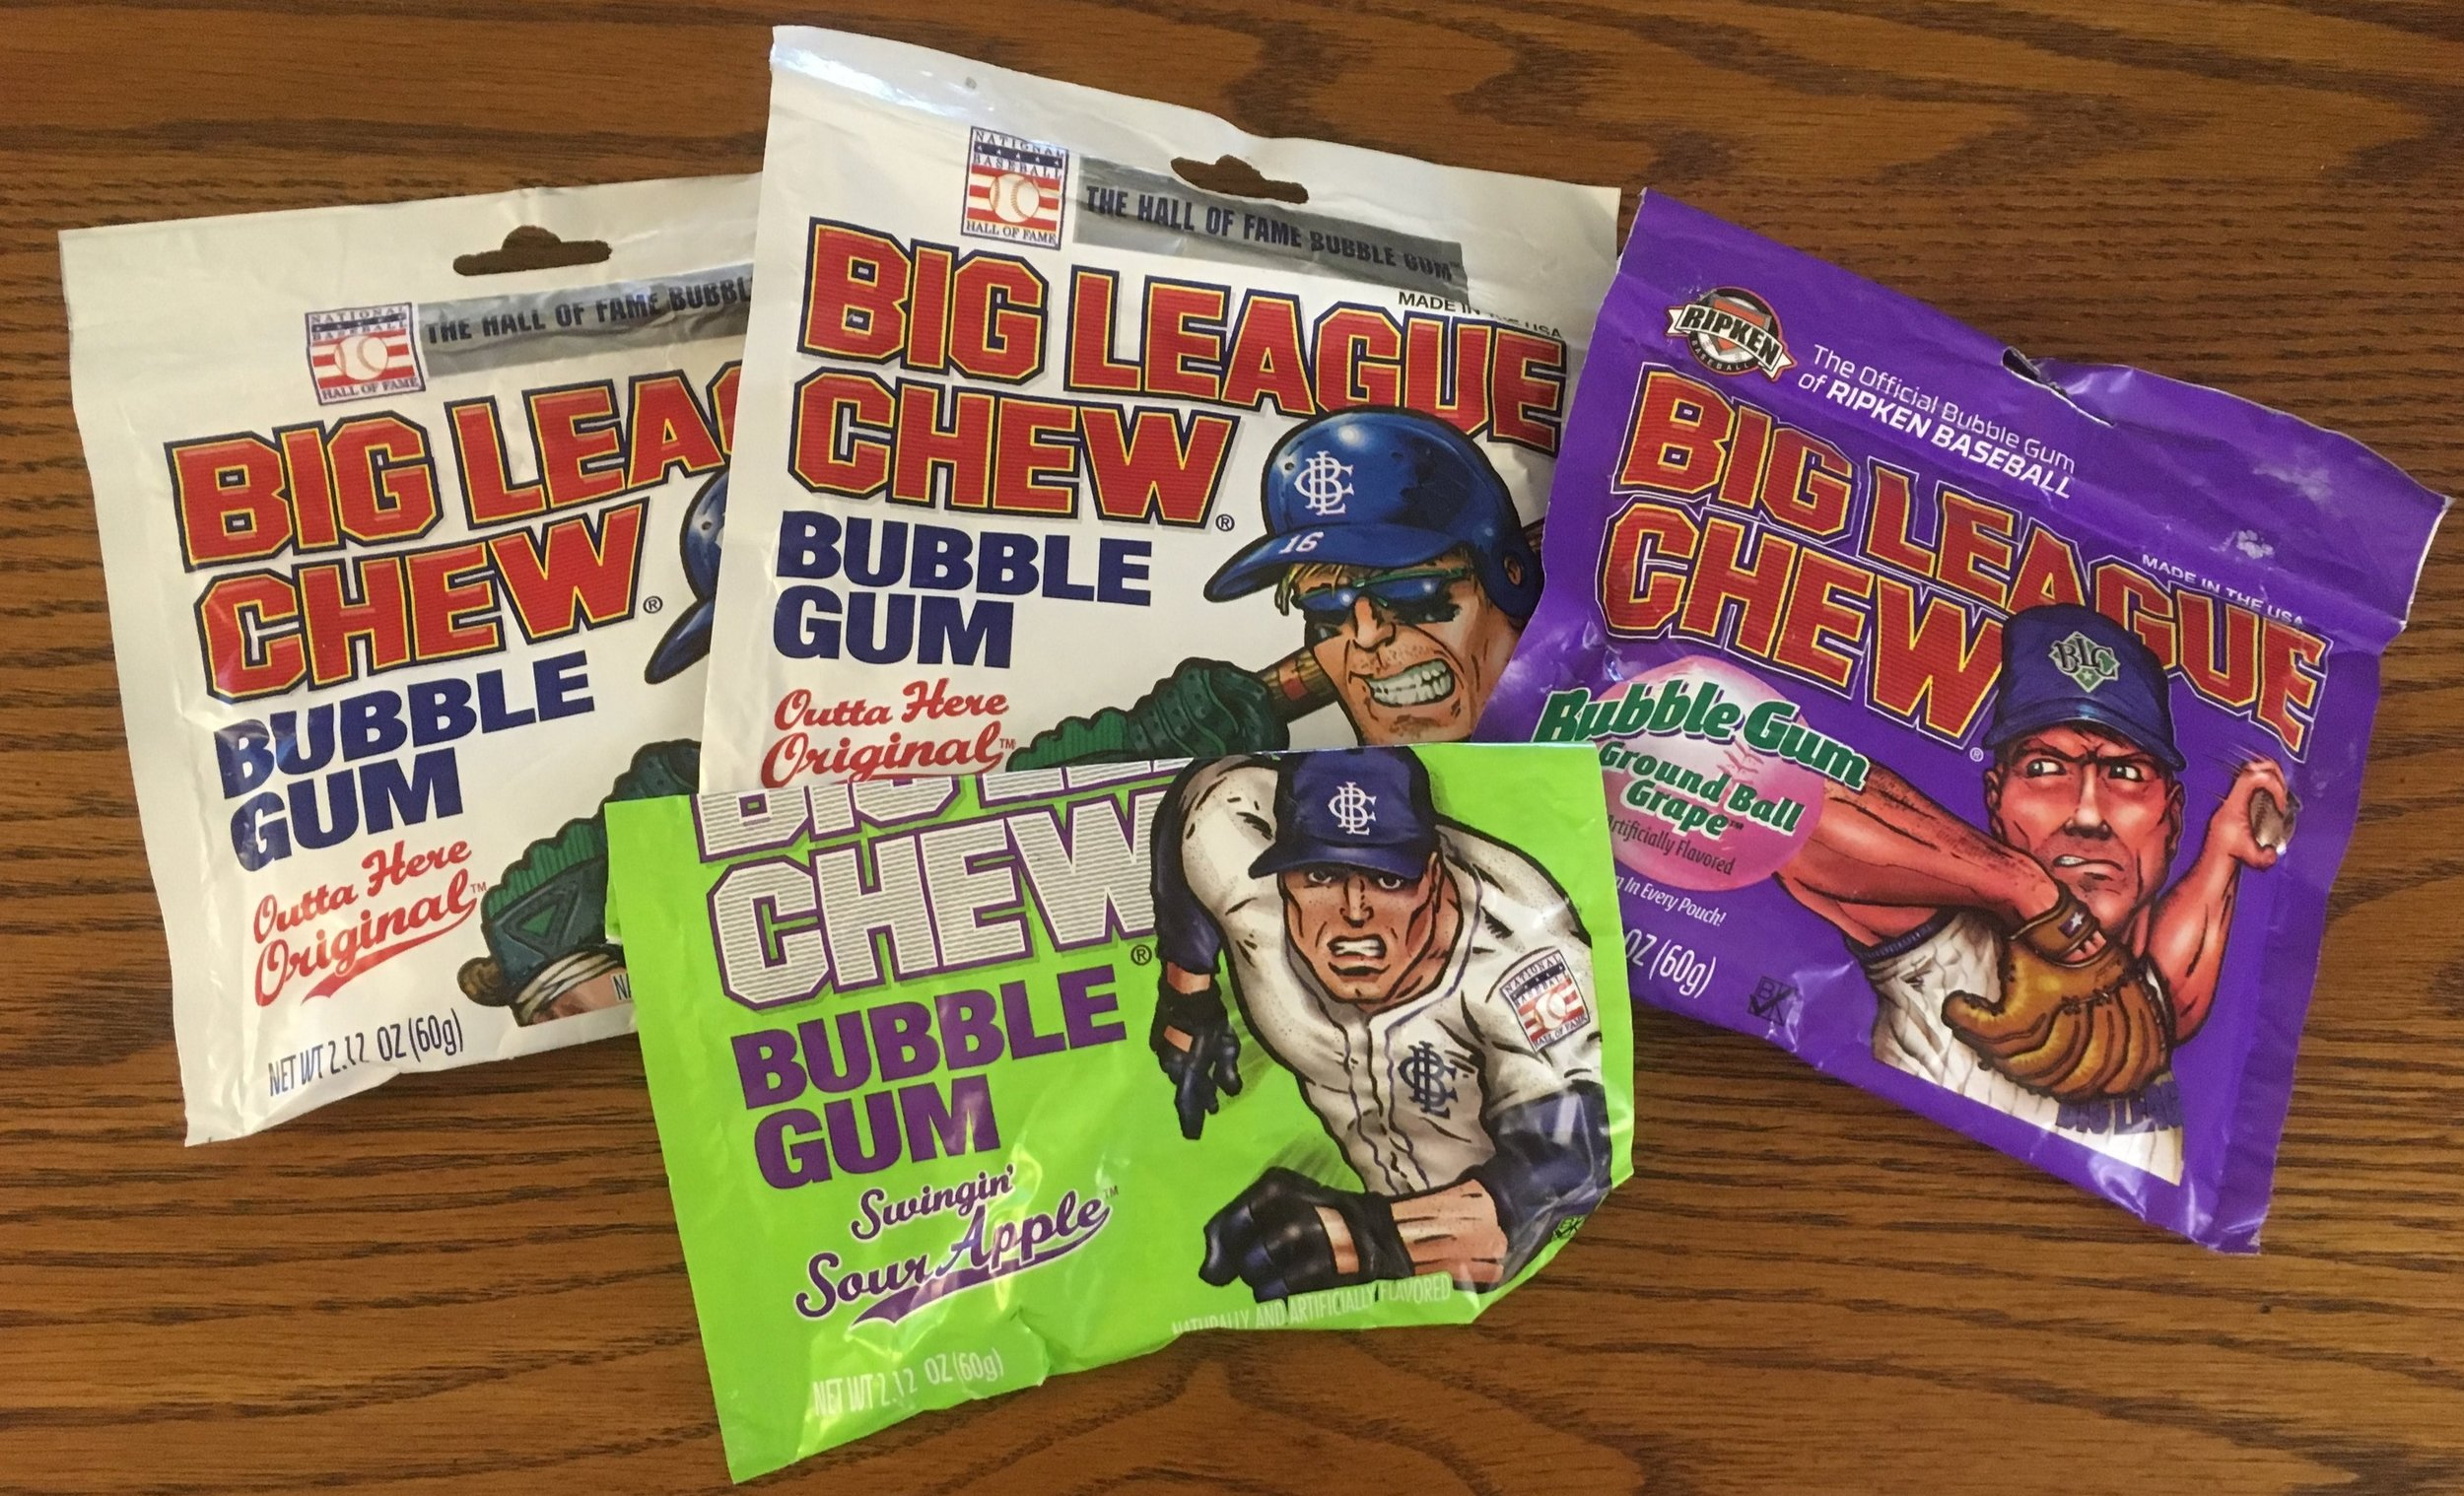 Original, Grape, and Sour Apple Big League Chew is in stock at WaxPackHero headquarters!